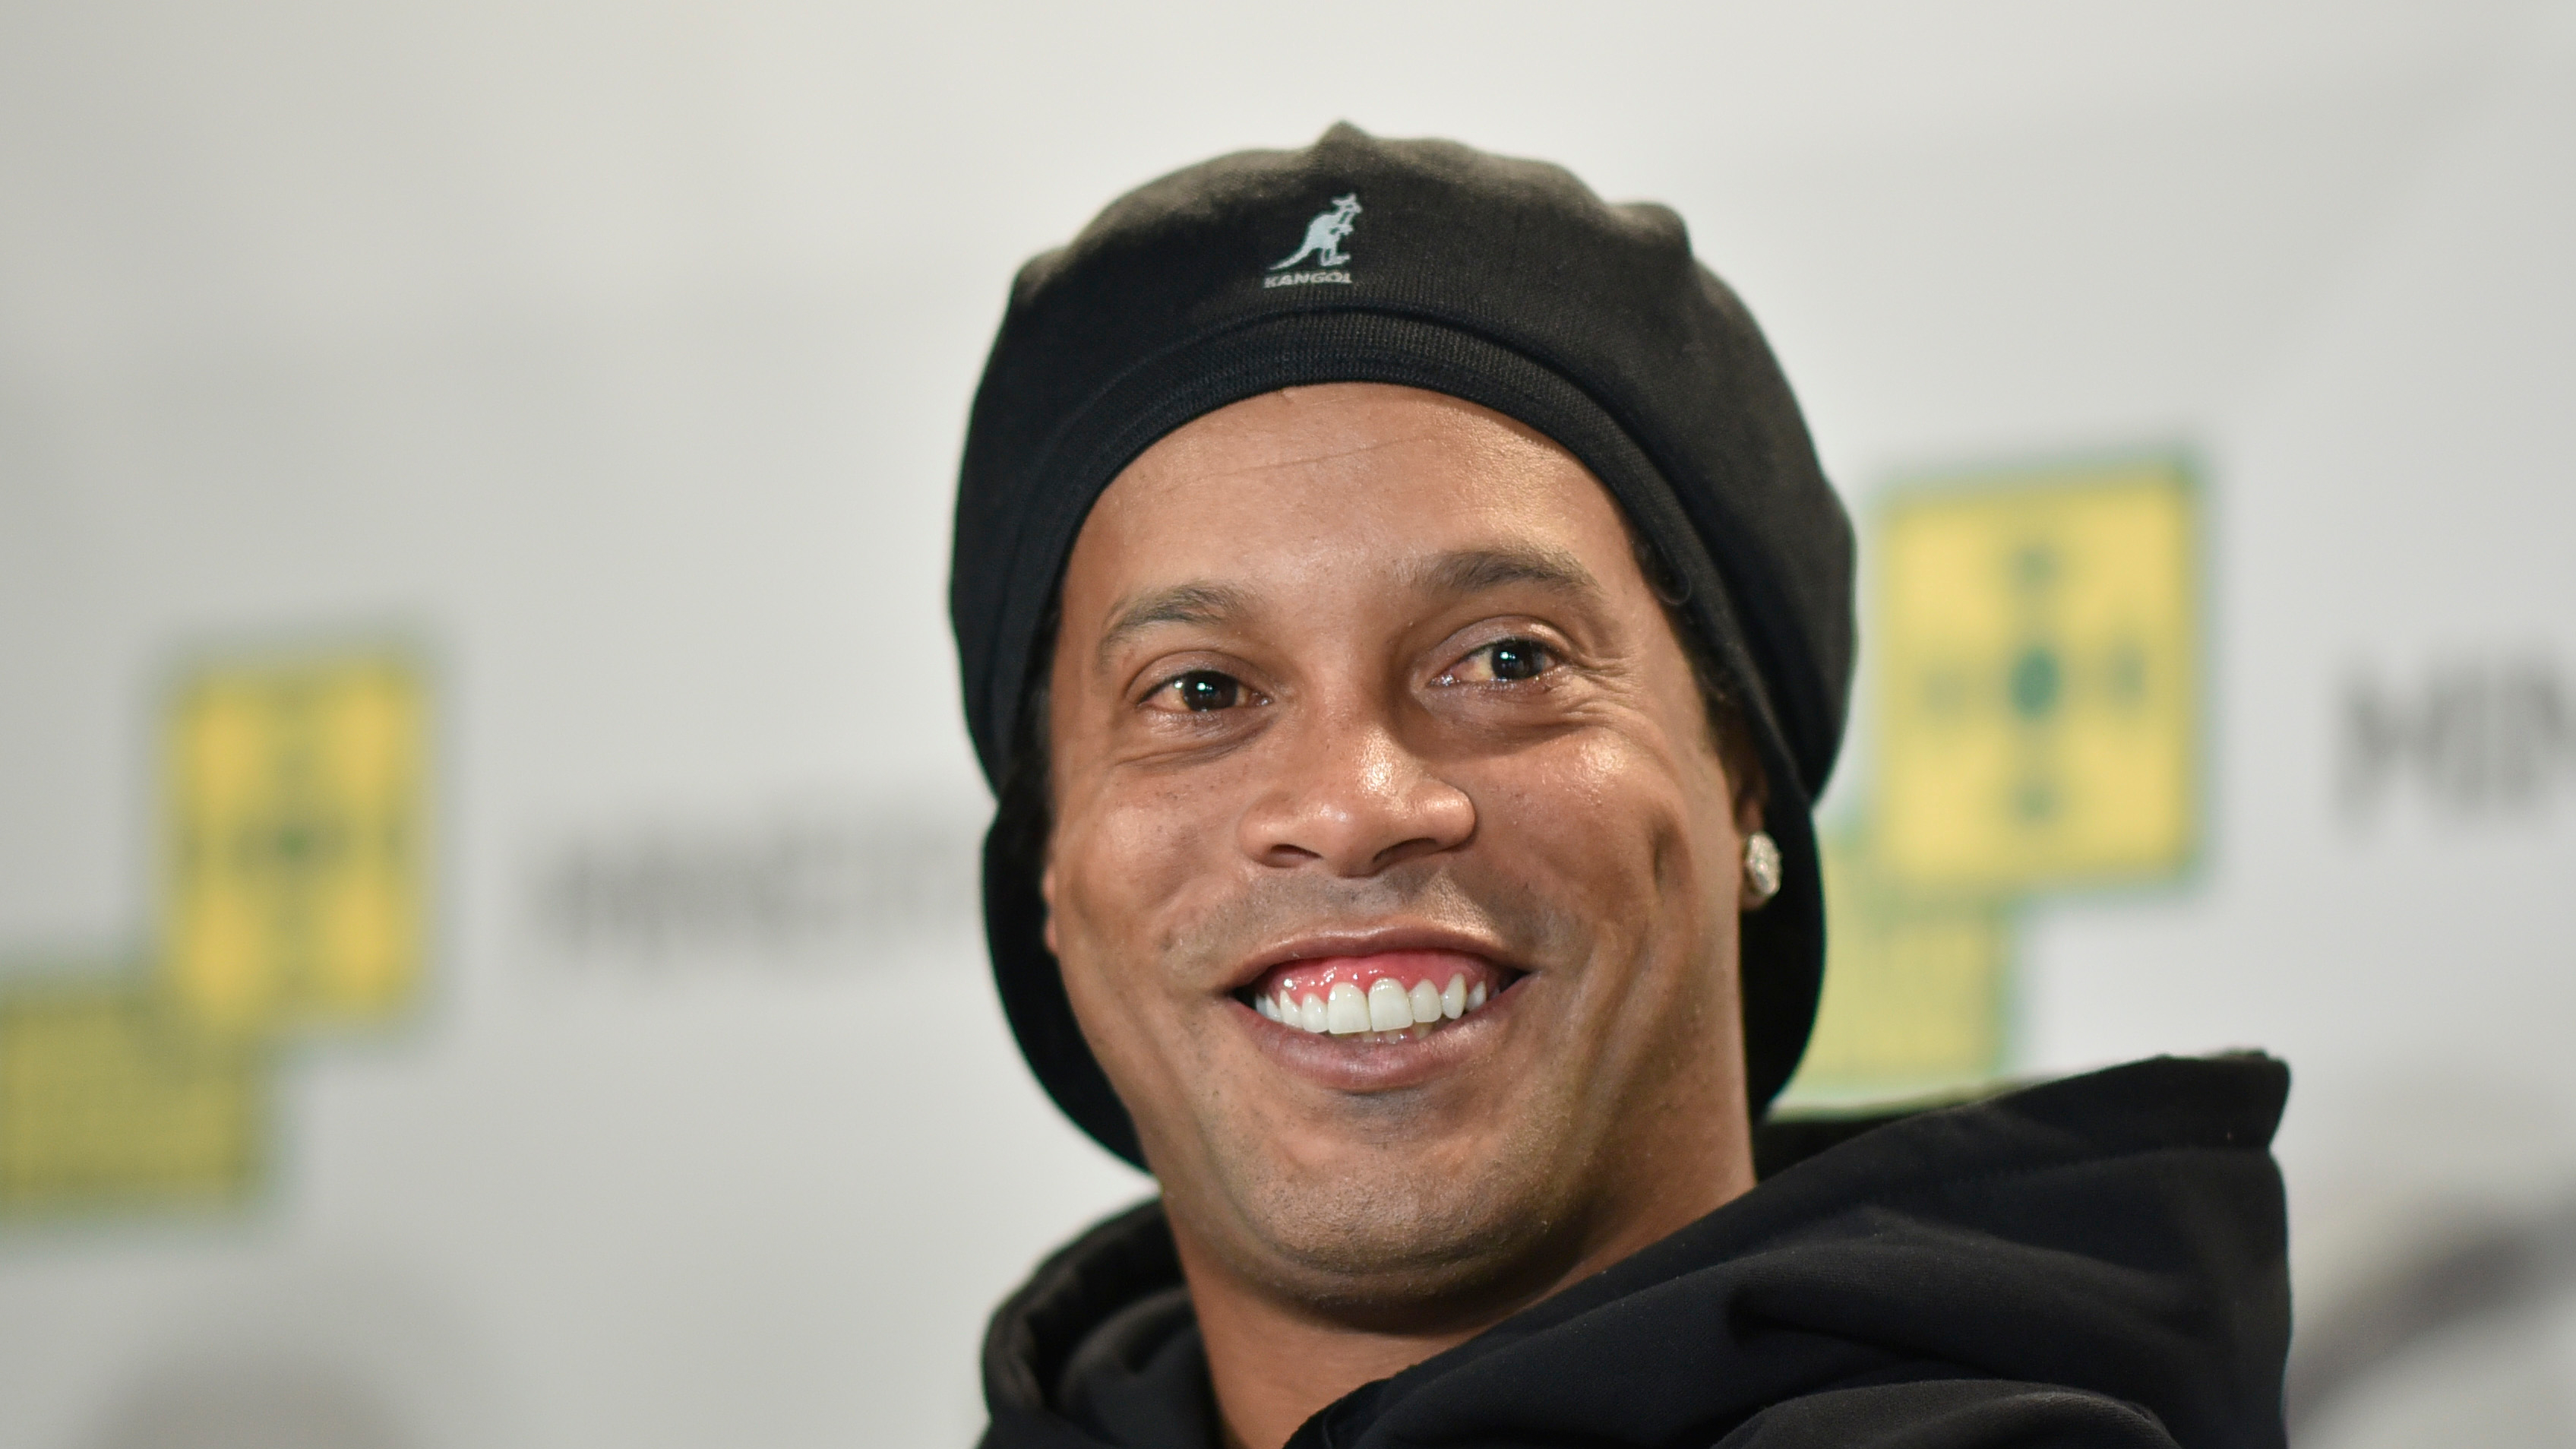 Ronaldinho named Brazil's tourism ambassador despite passport hold